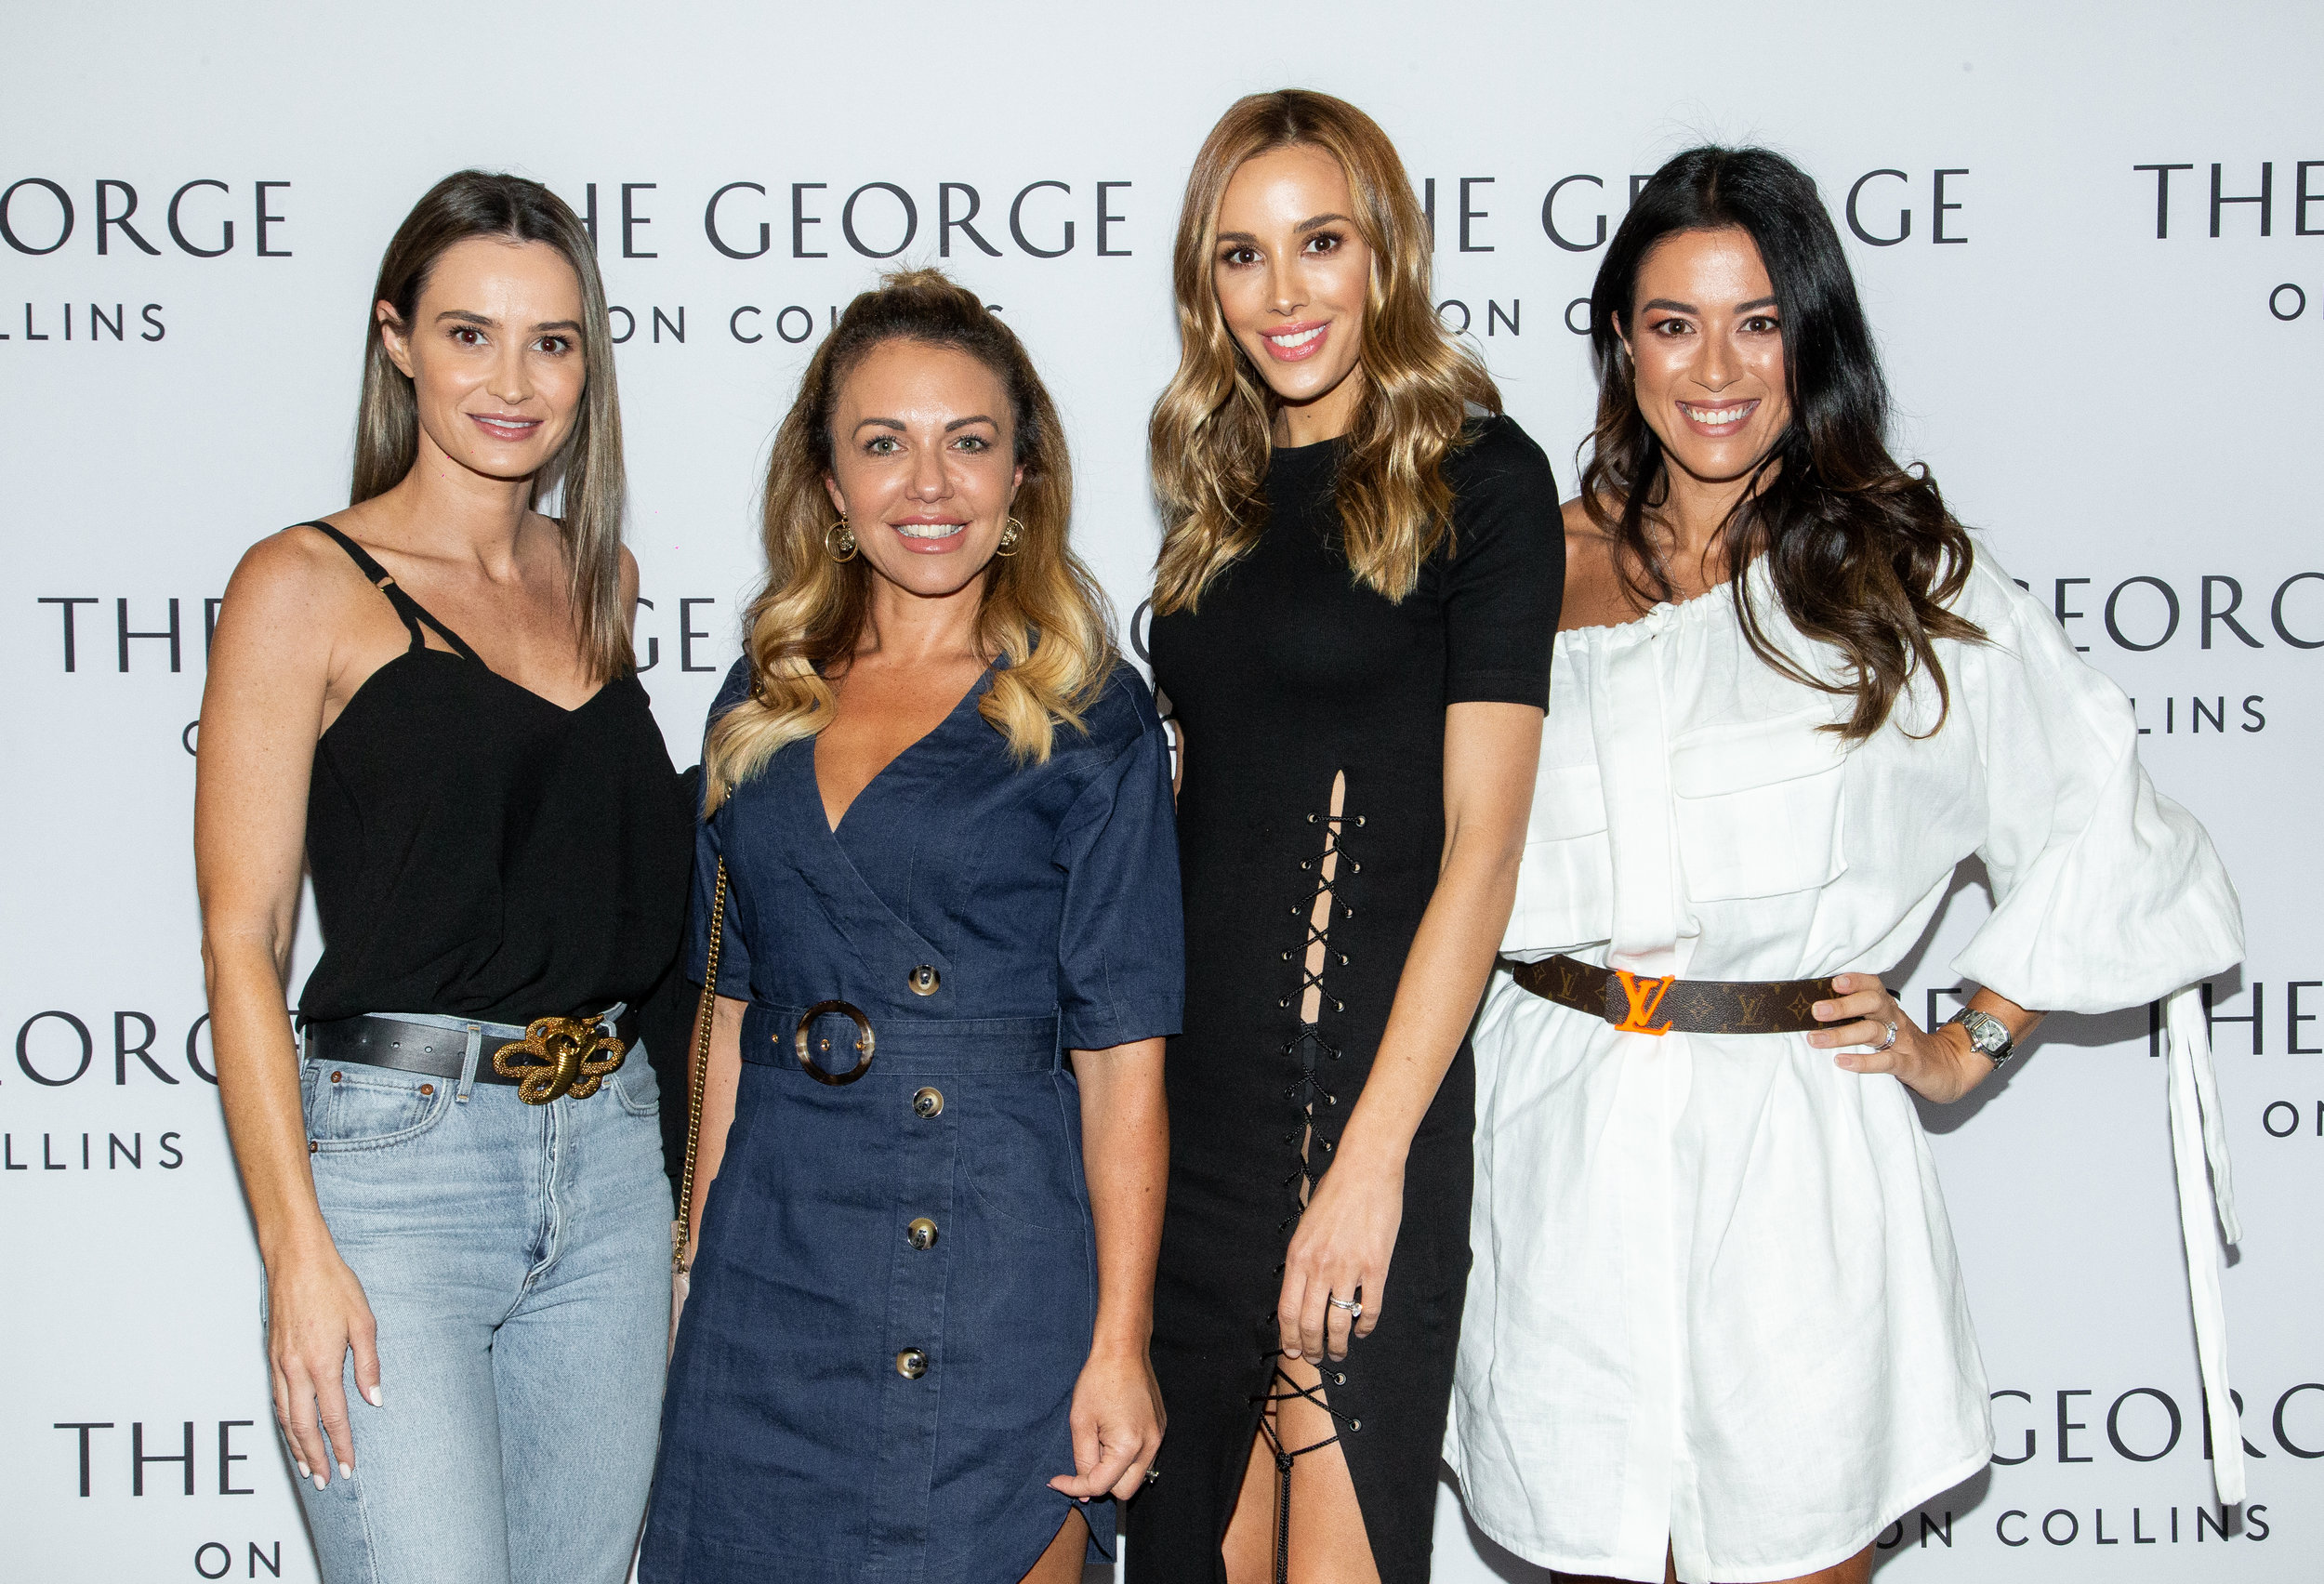 Khanh Ong x The George On Collins - Kylie Brown, Emma Pelicano, Bec Judd, Michelle Greene 2.jpg